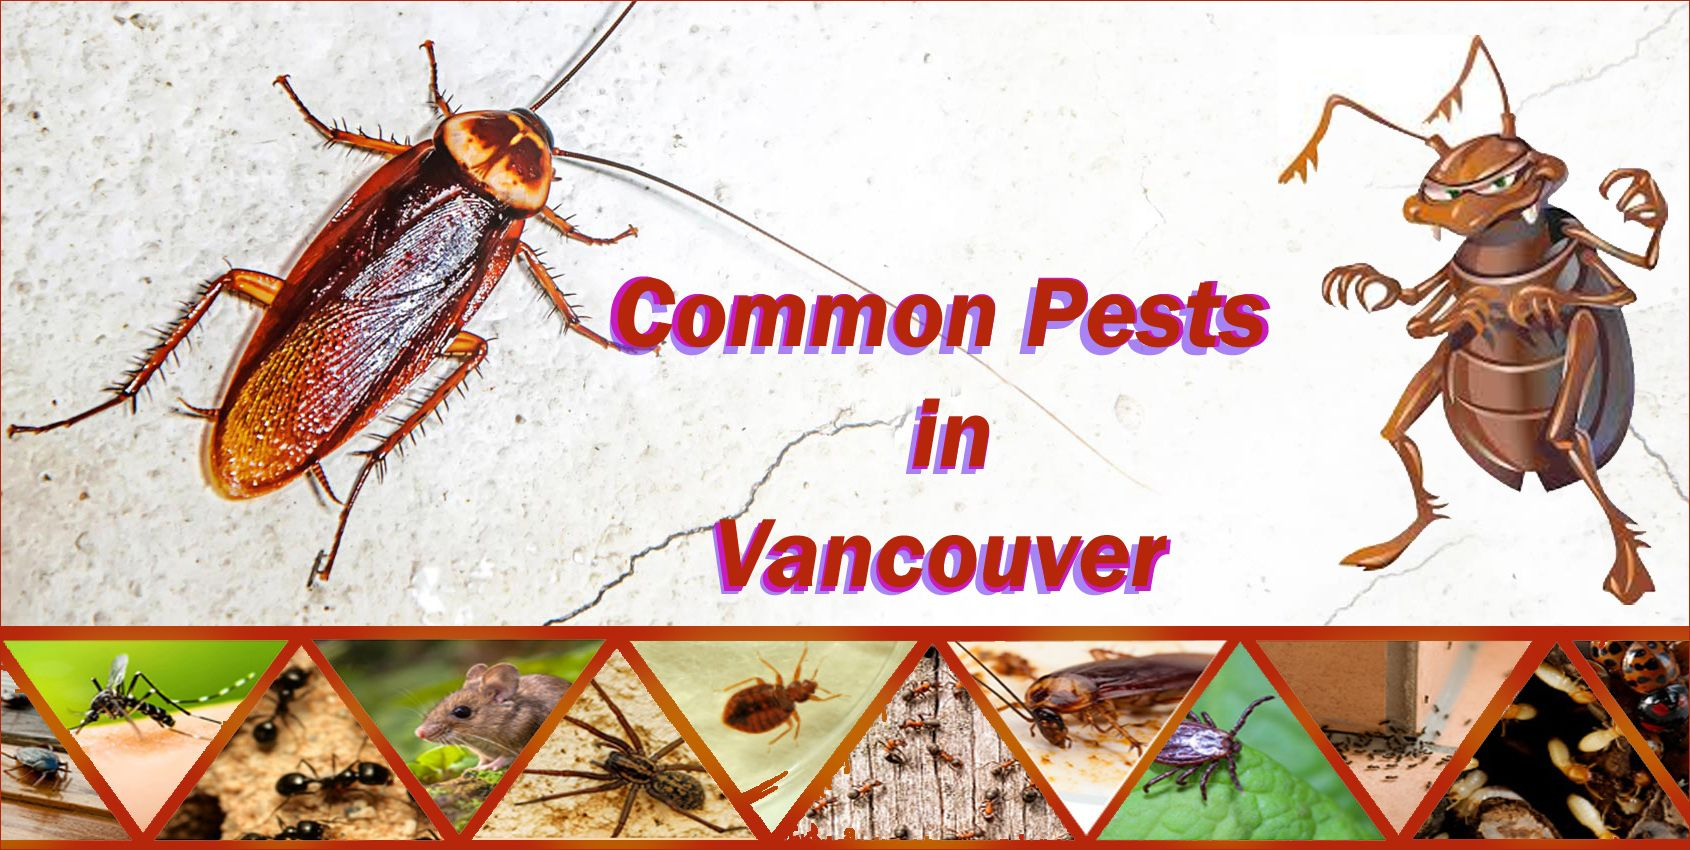 Control All Pests In Vancouver With The Help Of Effective Methods Pest Control Harmful Insects Vancouver